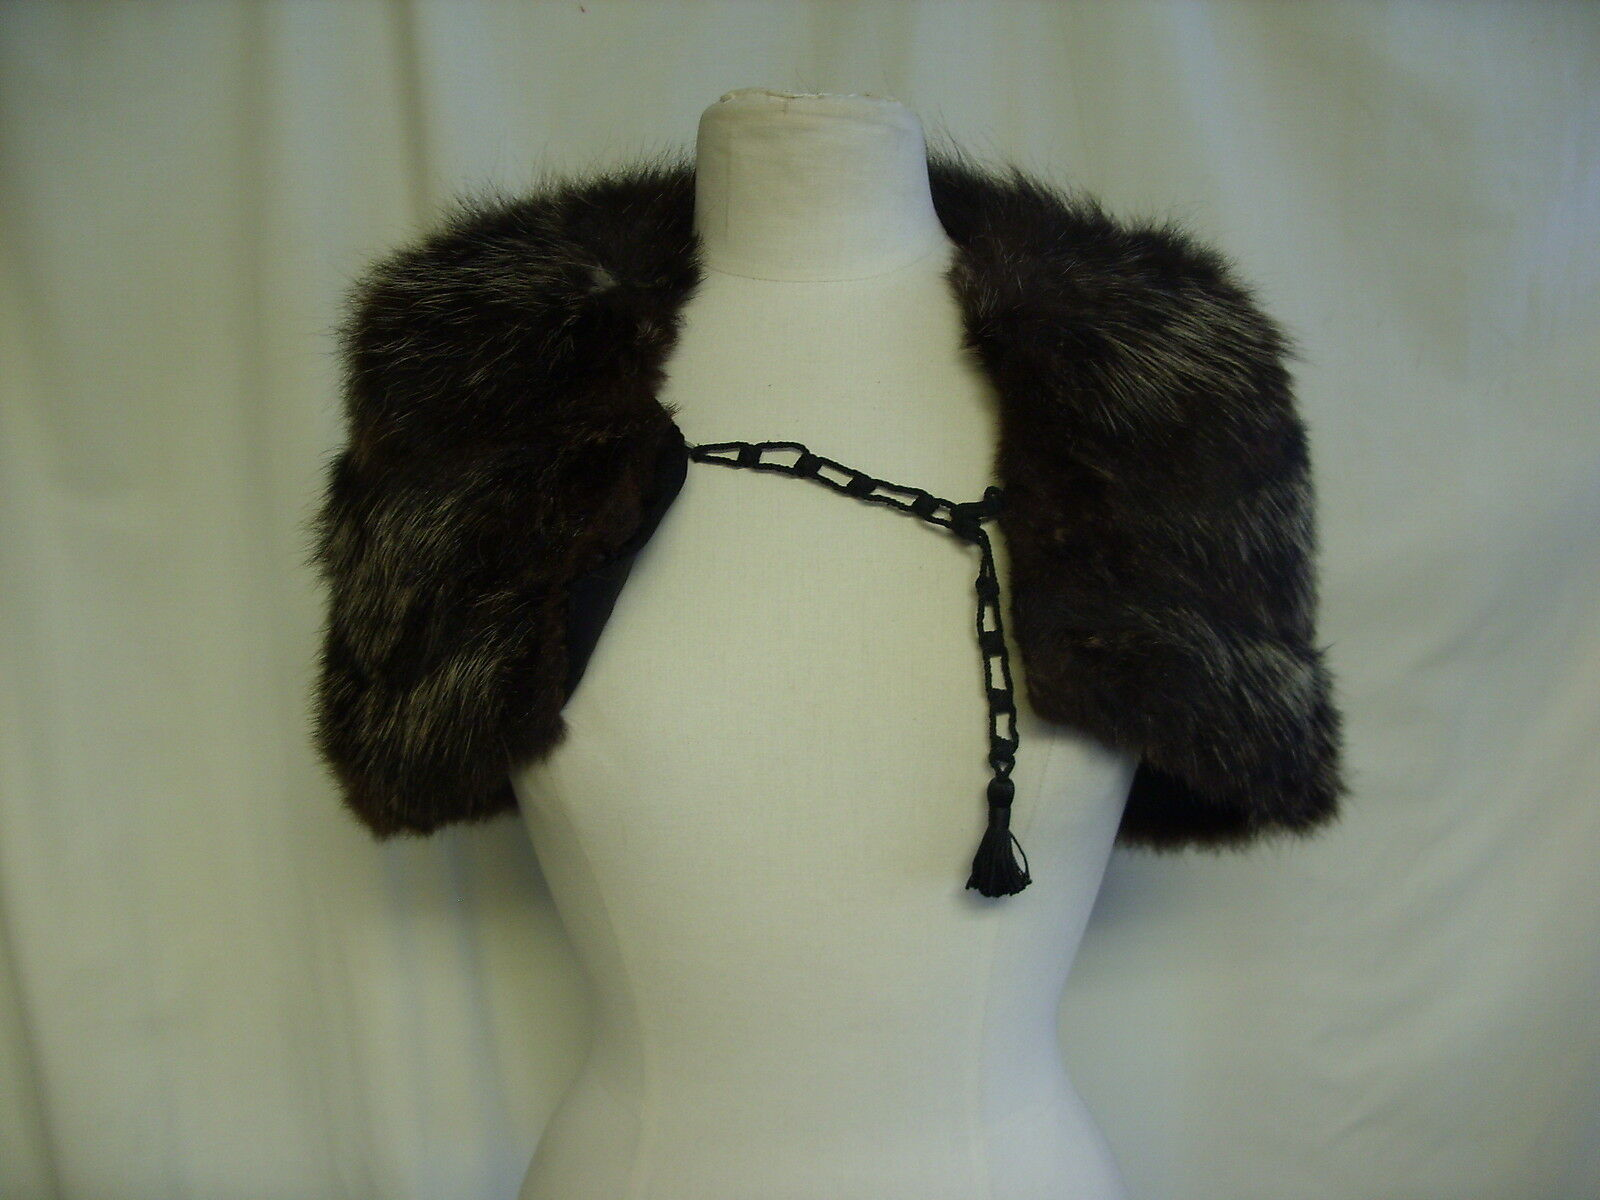 Ladies Real Fur Stole small, dark brown fox 21  across, 12  wide, some wear 7790